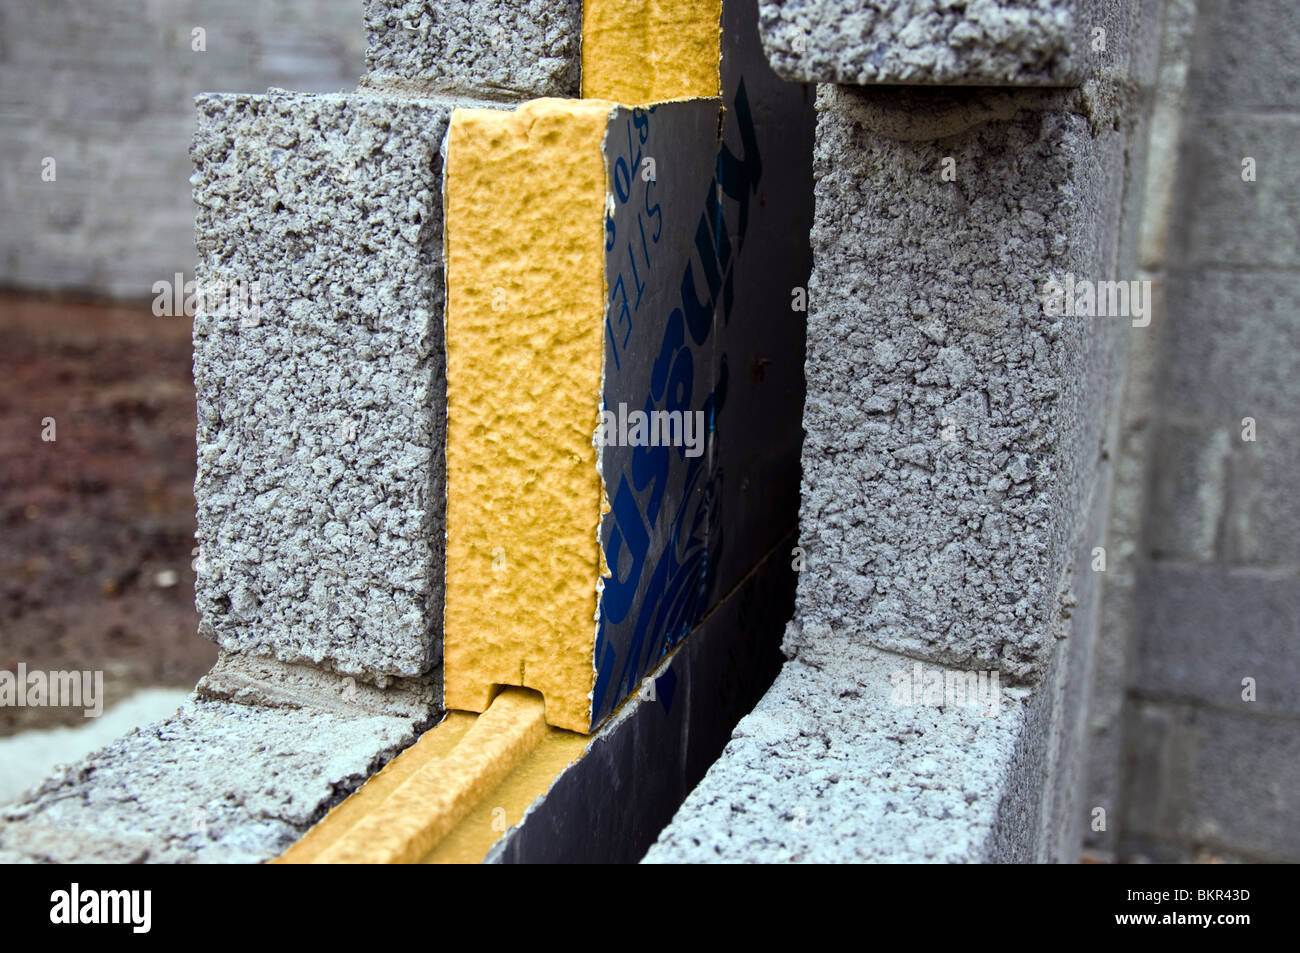 Cavity wall insulation stock photos cavity wall for Blown mineral wool cavity insulation